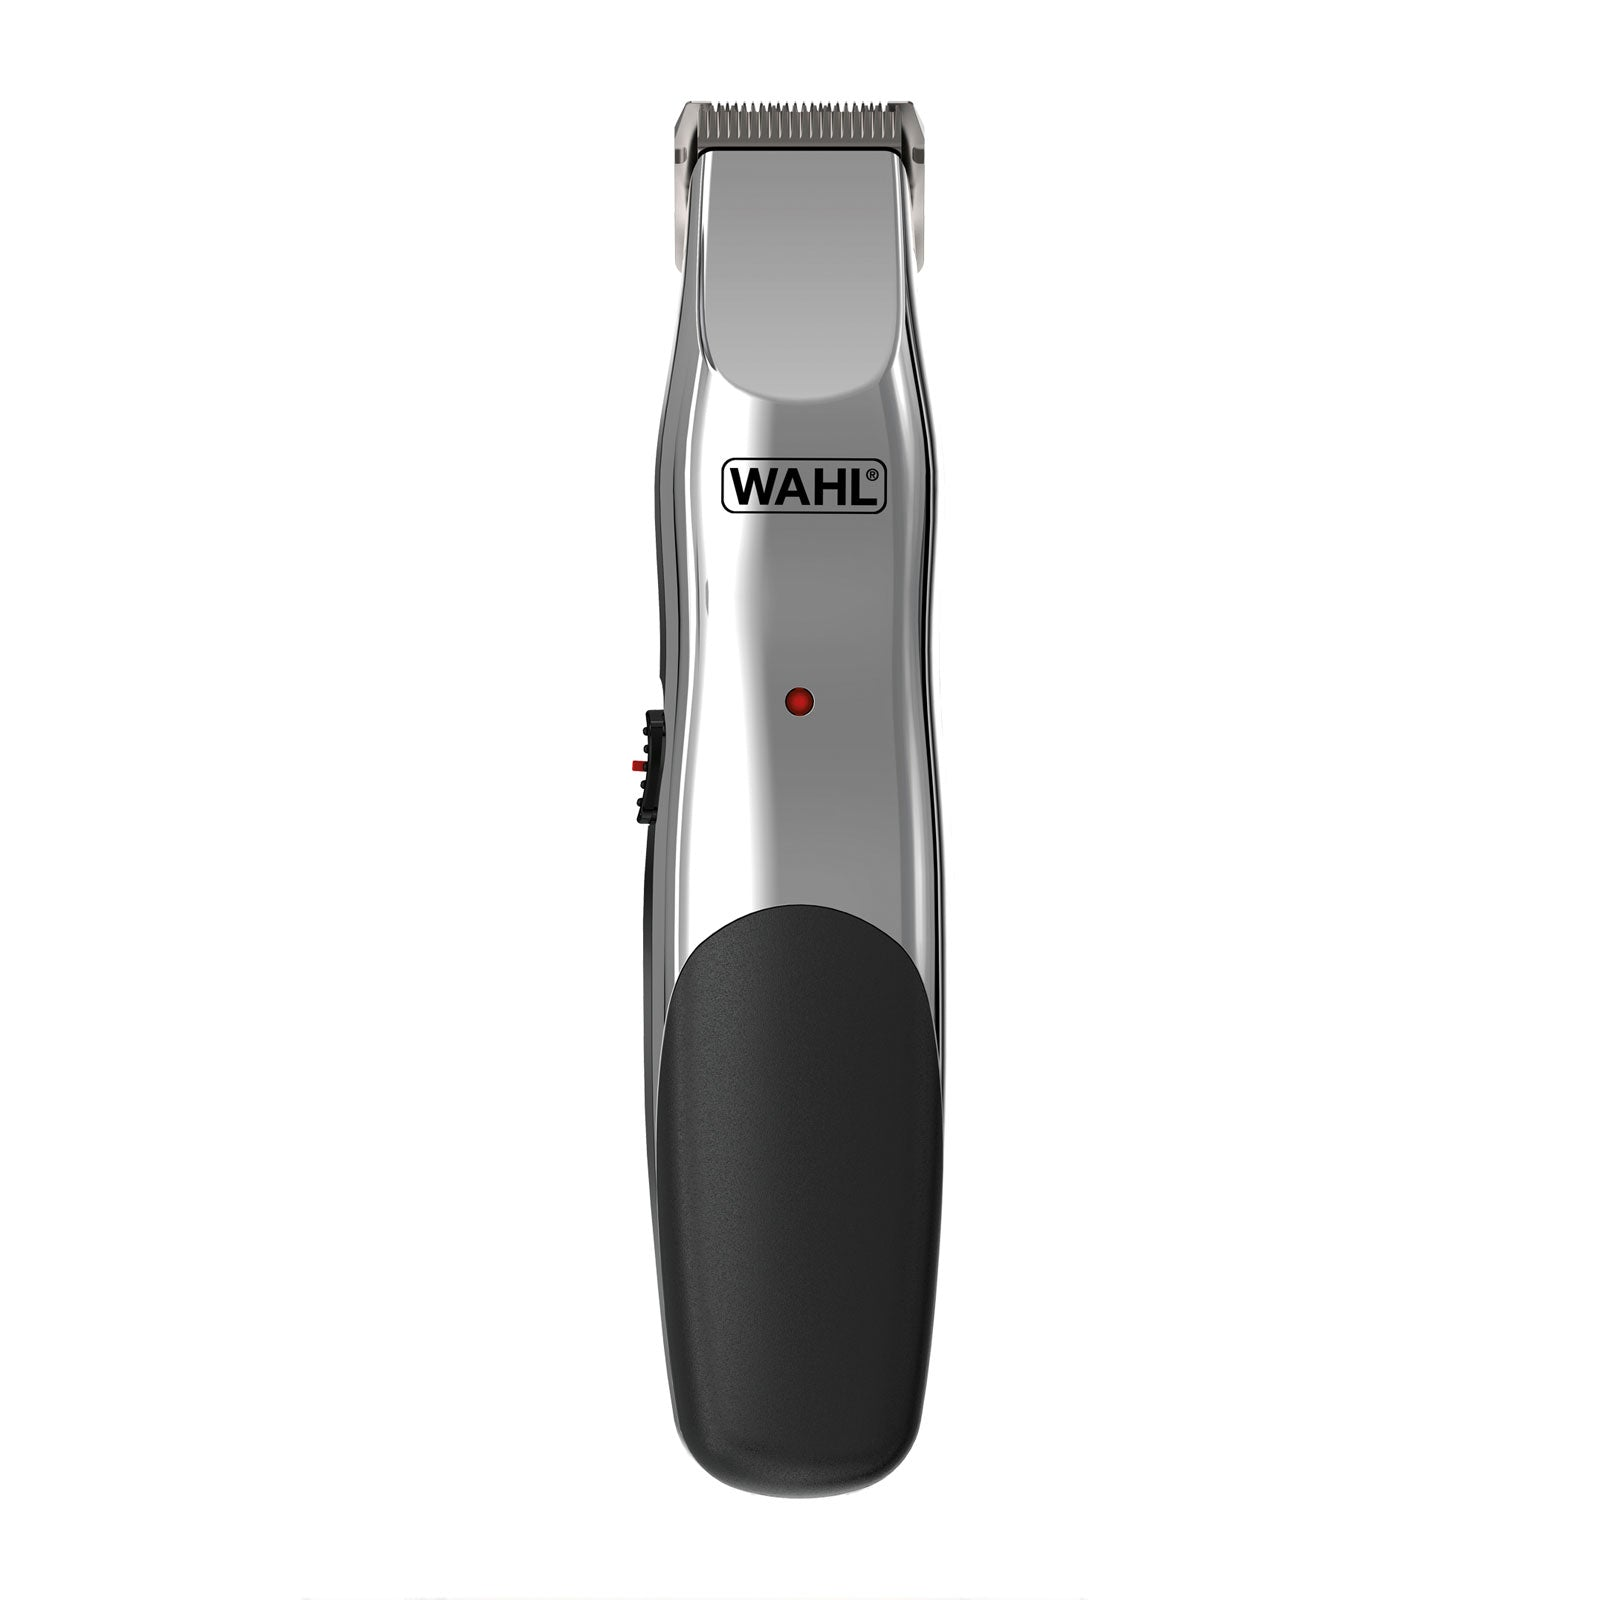 WAHL Groomsman Rechargeable Trimmer Grooming Kit